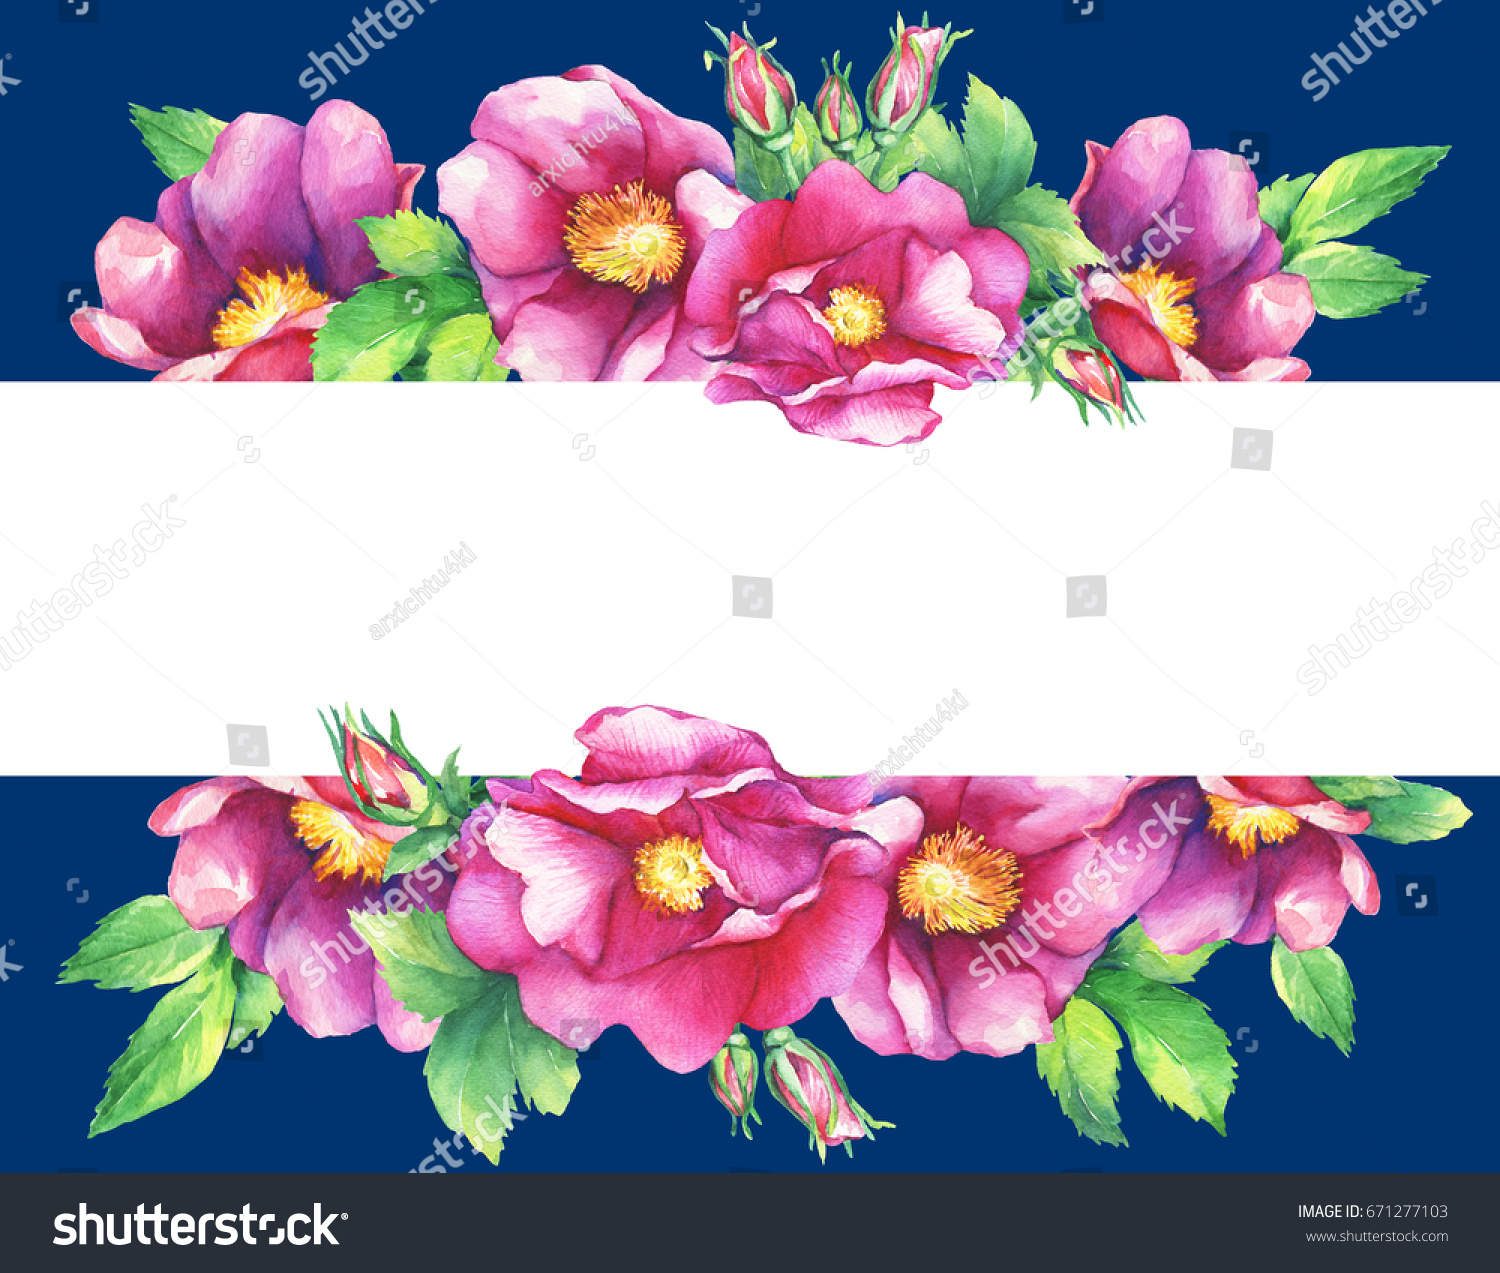 Banner Flowering Pink Roses Names Dog Stock Illustration 671277103